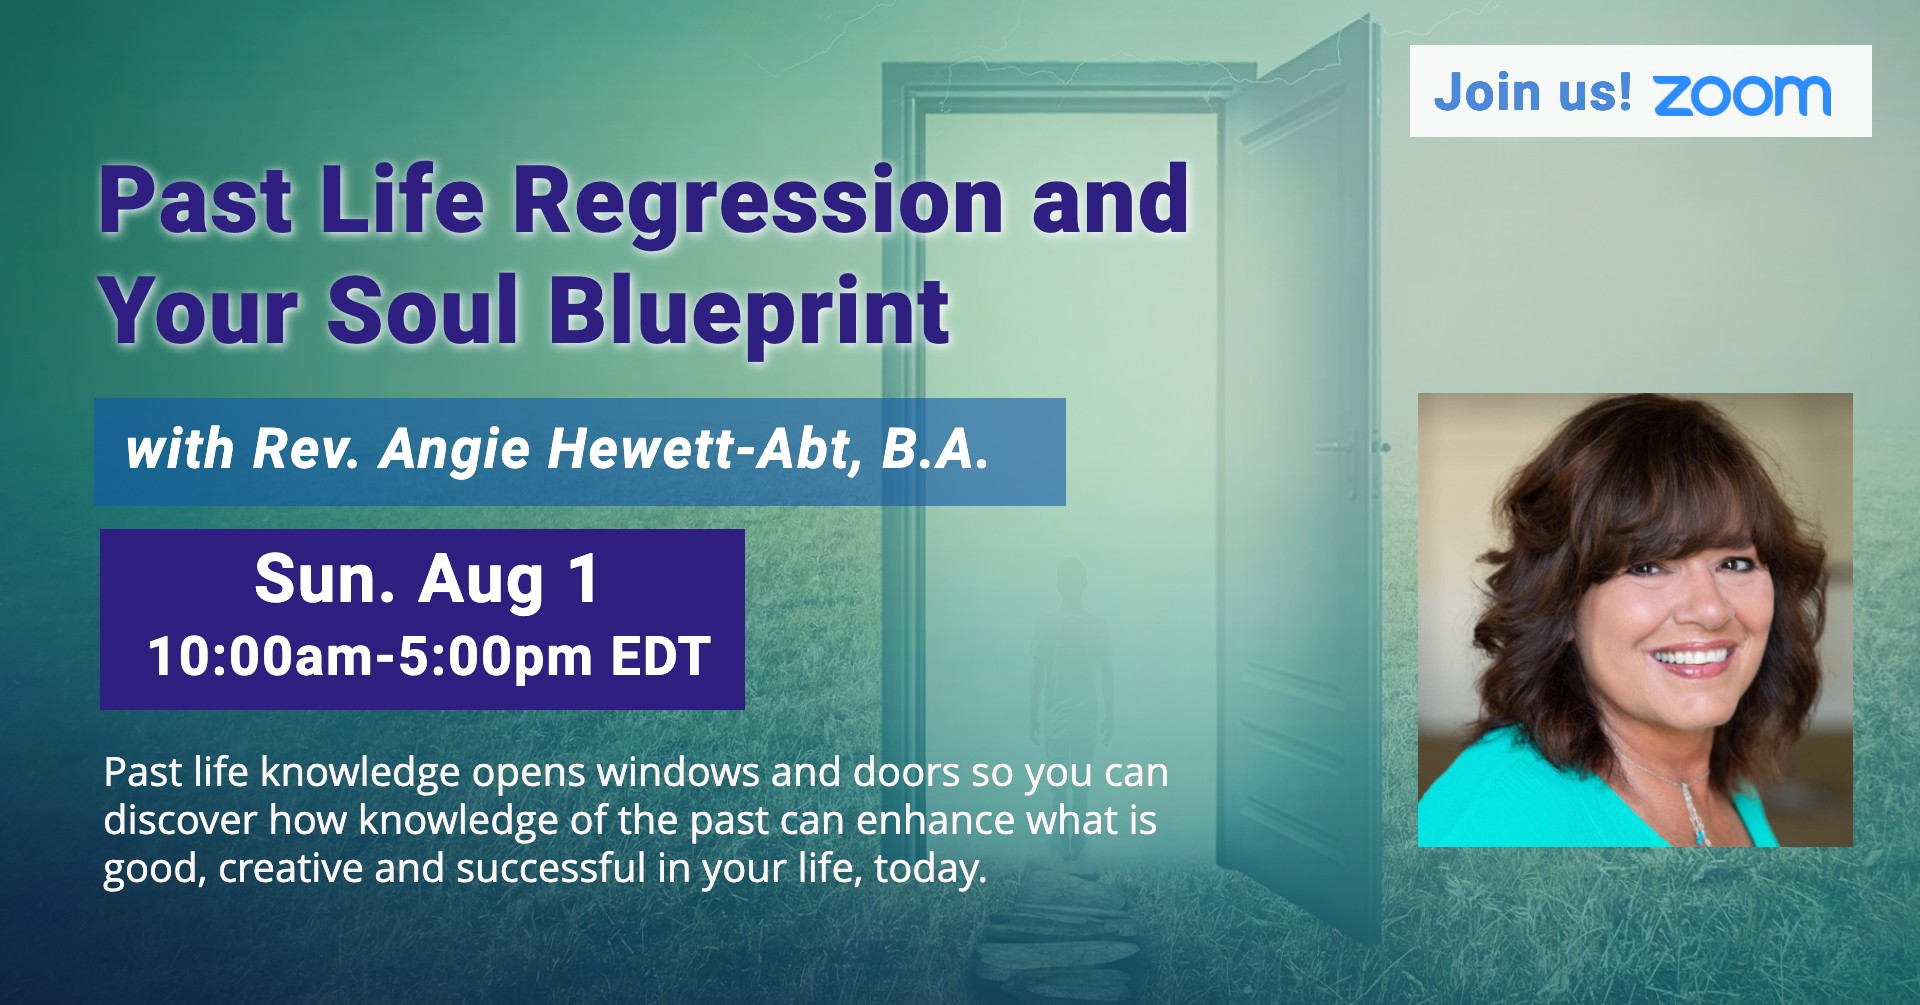 Past Life Regression and Your Soul Blueprint with Rev. Angie Abt